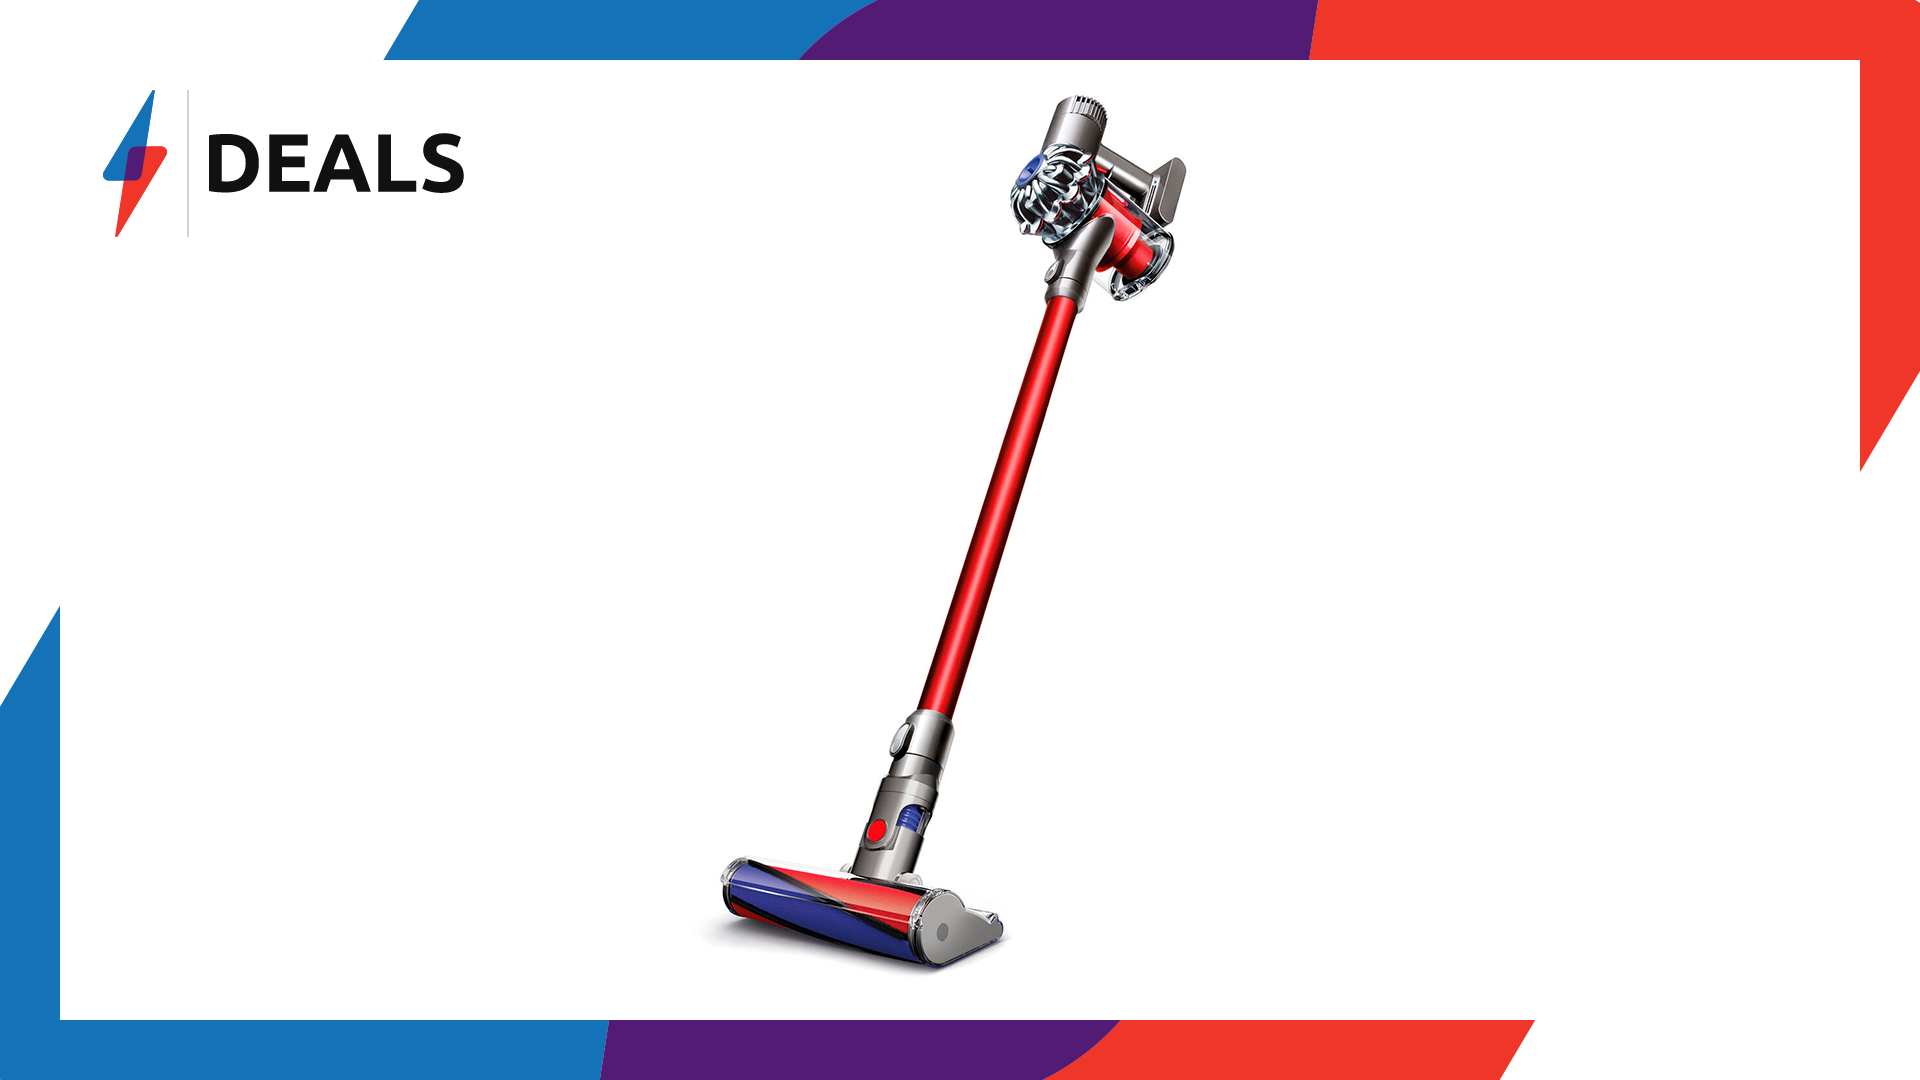 Price Cut: £110 off the Dyson V6 Cordless Vacuum Cleaner